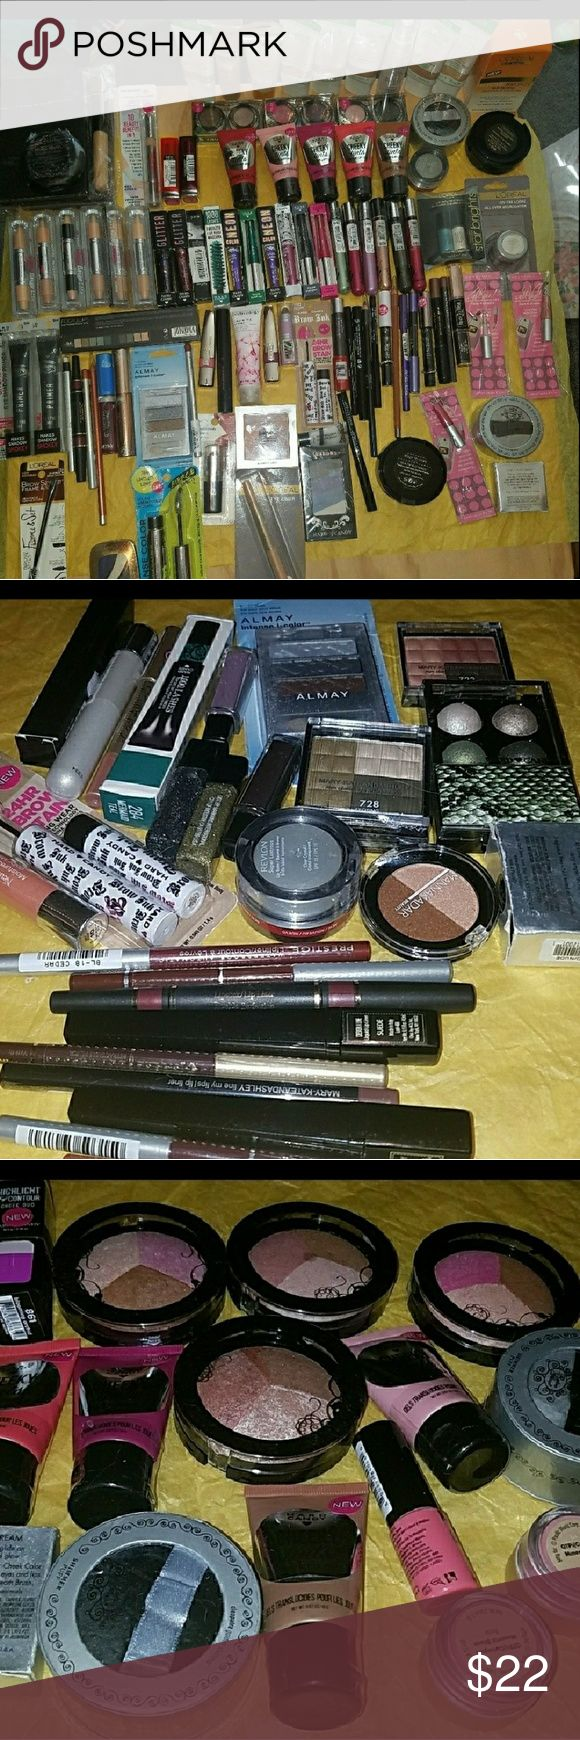 Makeup Full Size Bundle of 5 makeup itemsOnly ☡please Read This Is For 5 Makeup items  Only ☡☡Various brands mostly hard candy but other brands mix New Sealed Comes withsome free samples Please Message below if theres indiviudual.items youd like to see and please pick before purchasing thankyou!⚠ Makeup